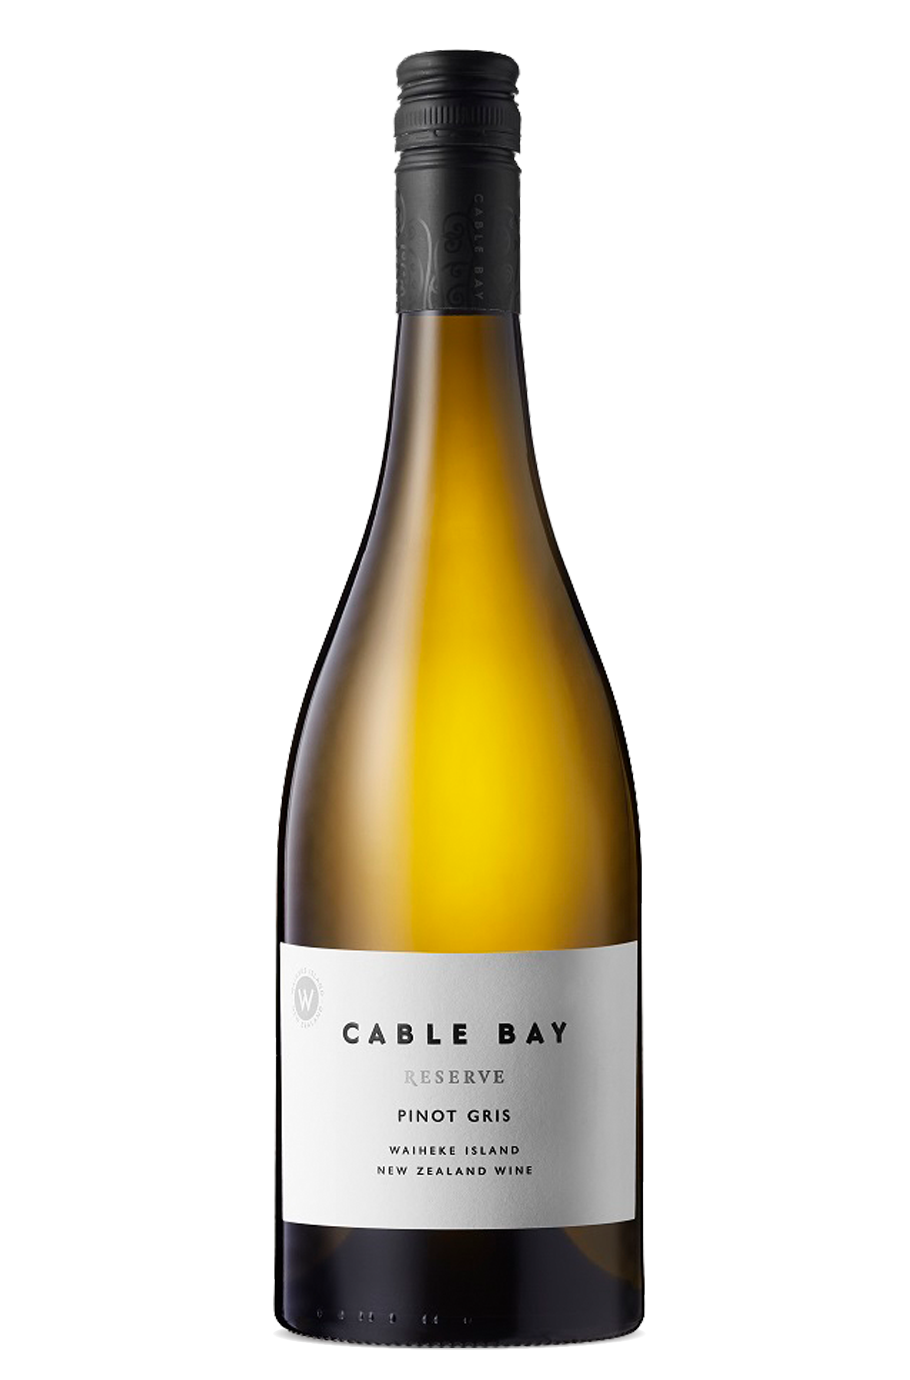 Cable Bay Reserve Pinot Gris 2019